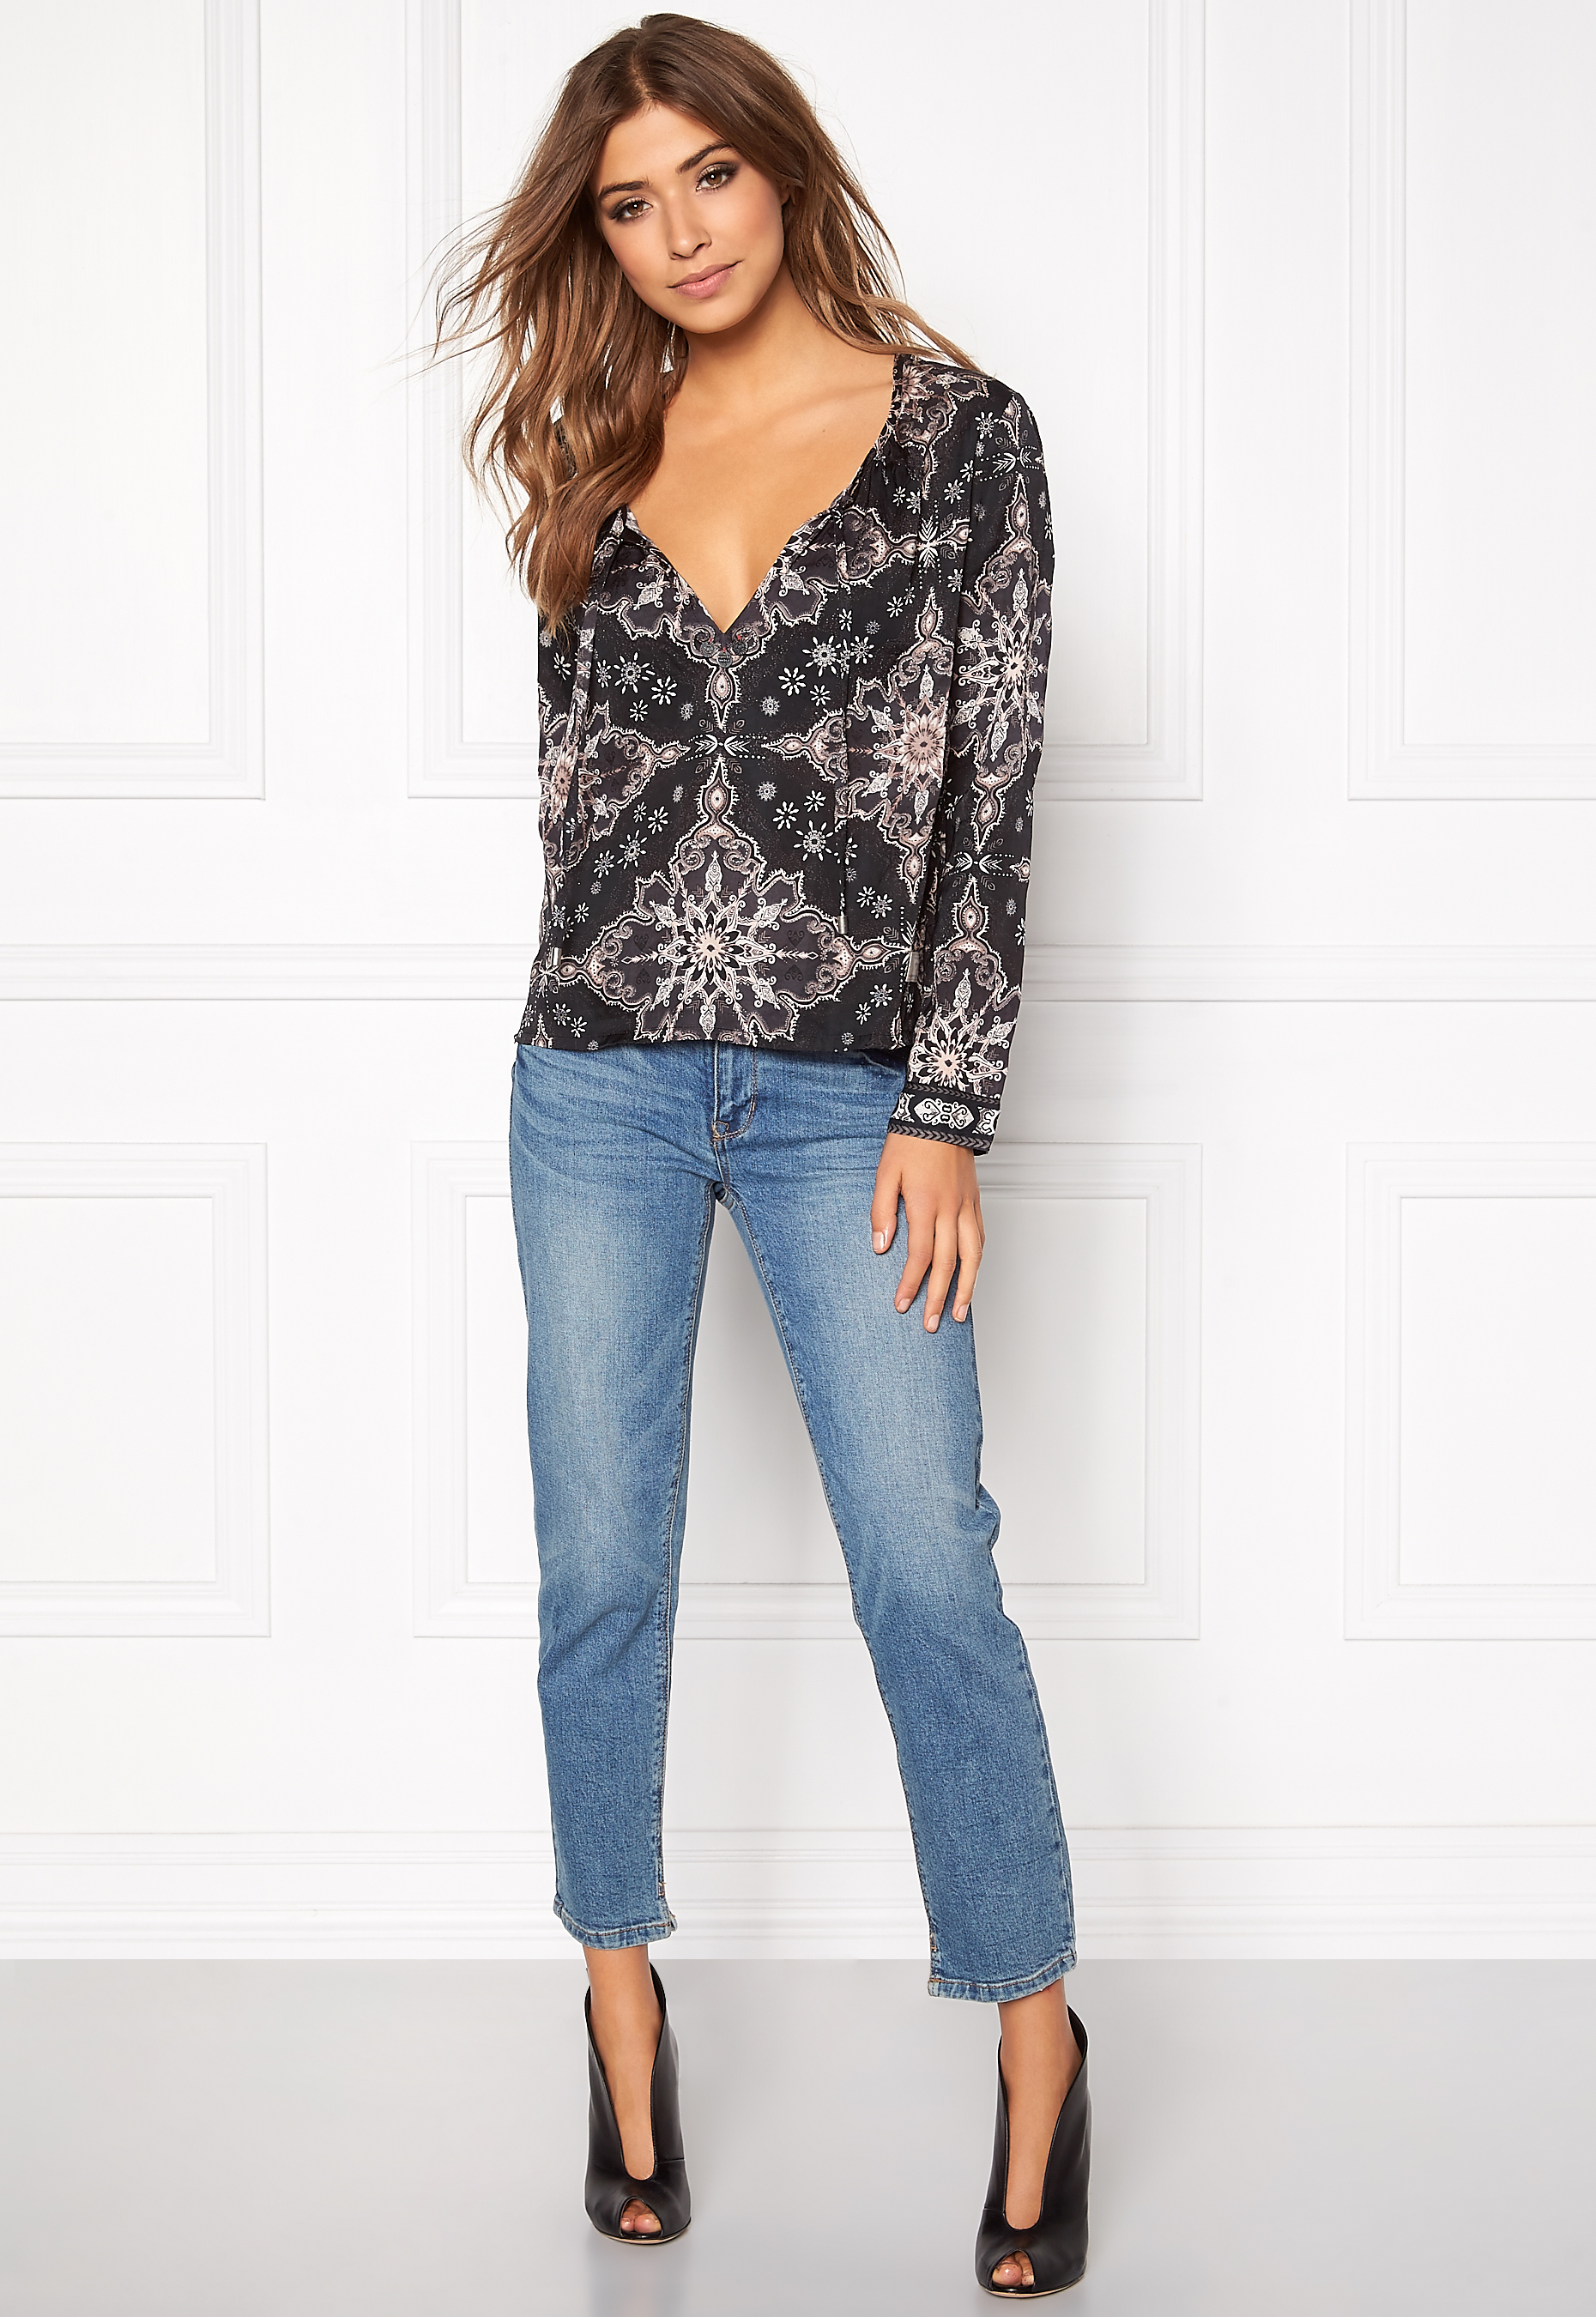 294d58689b1b Odd Molly Afternoon Delight Blouse Almost Black - Bubbleroom